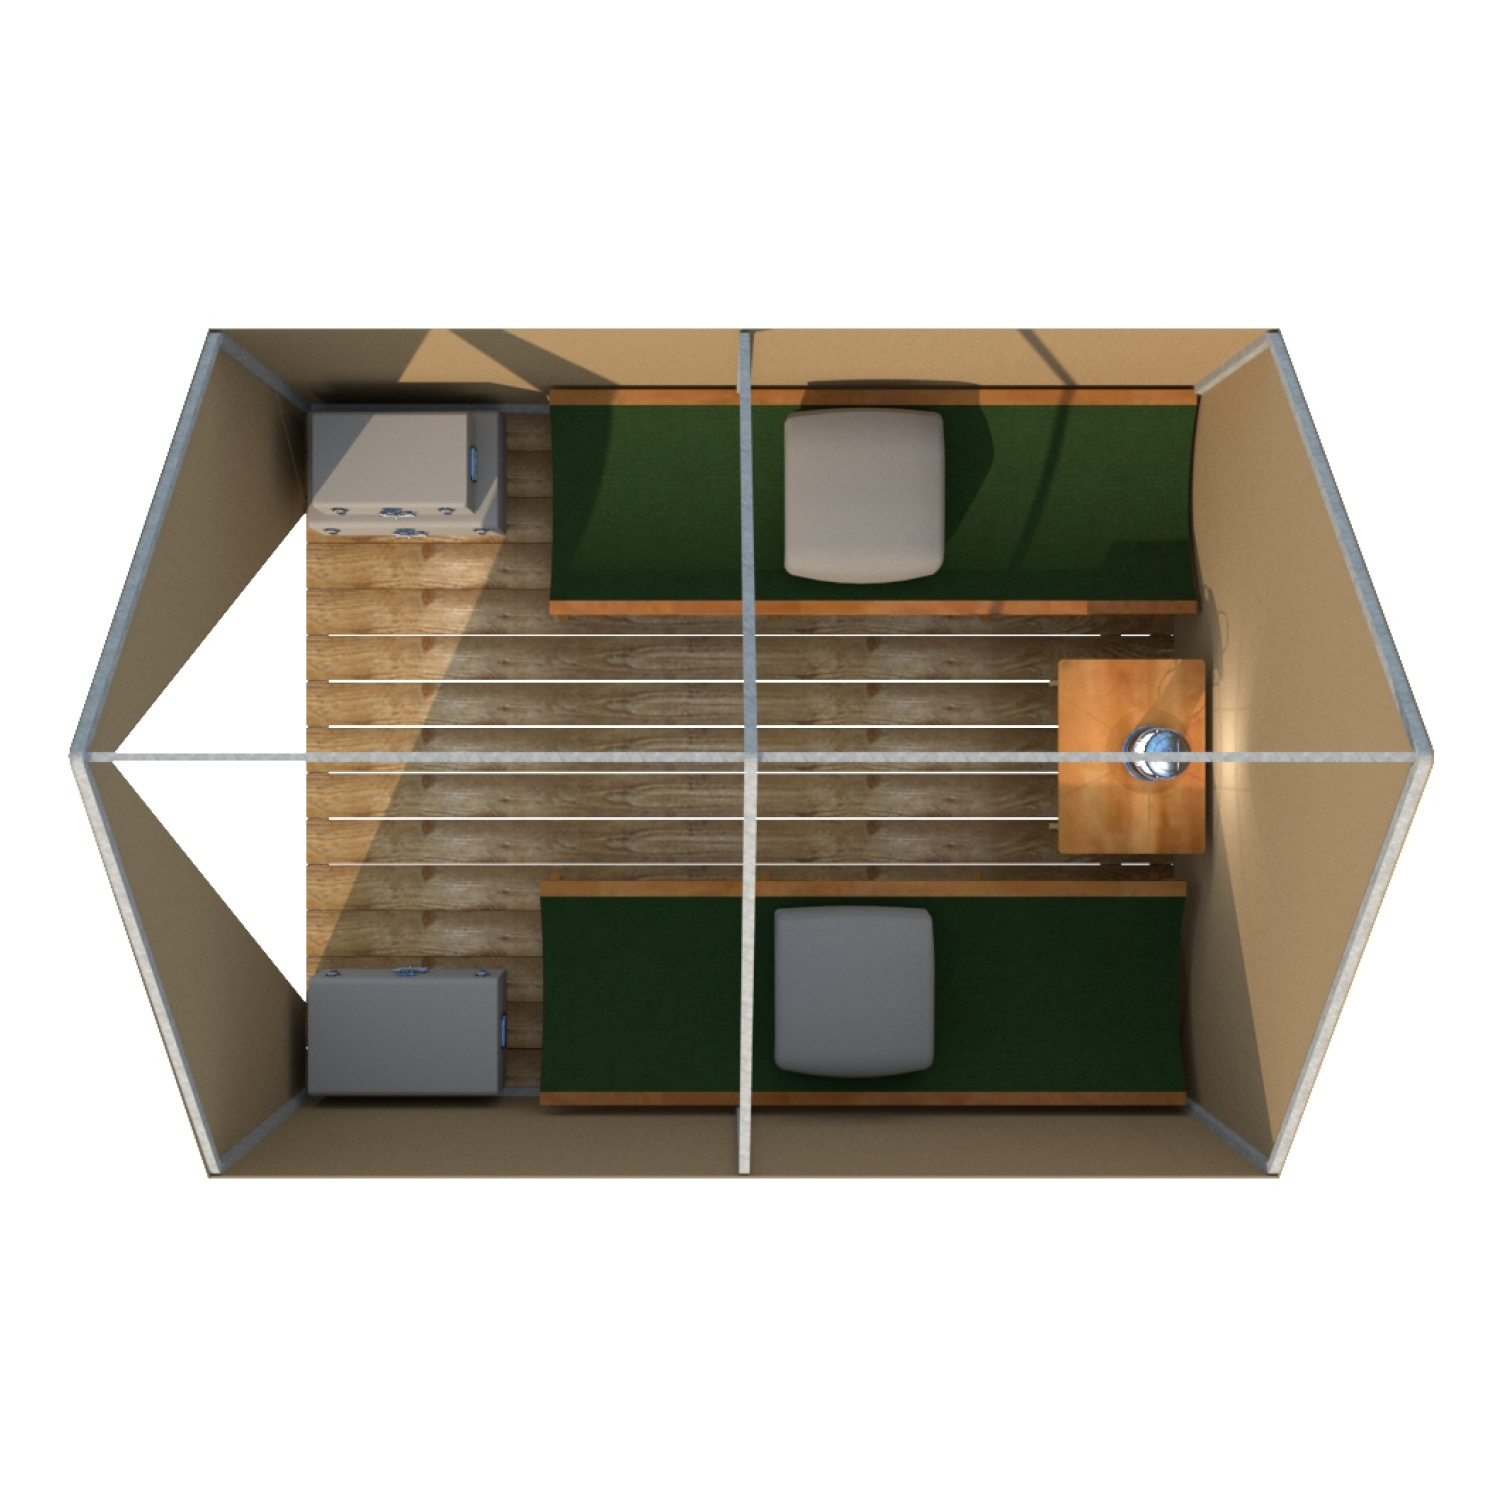 7090 scout tent layout with furniture